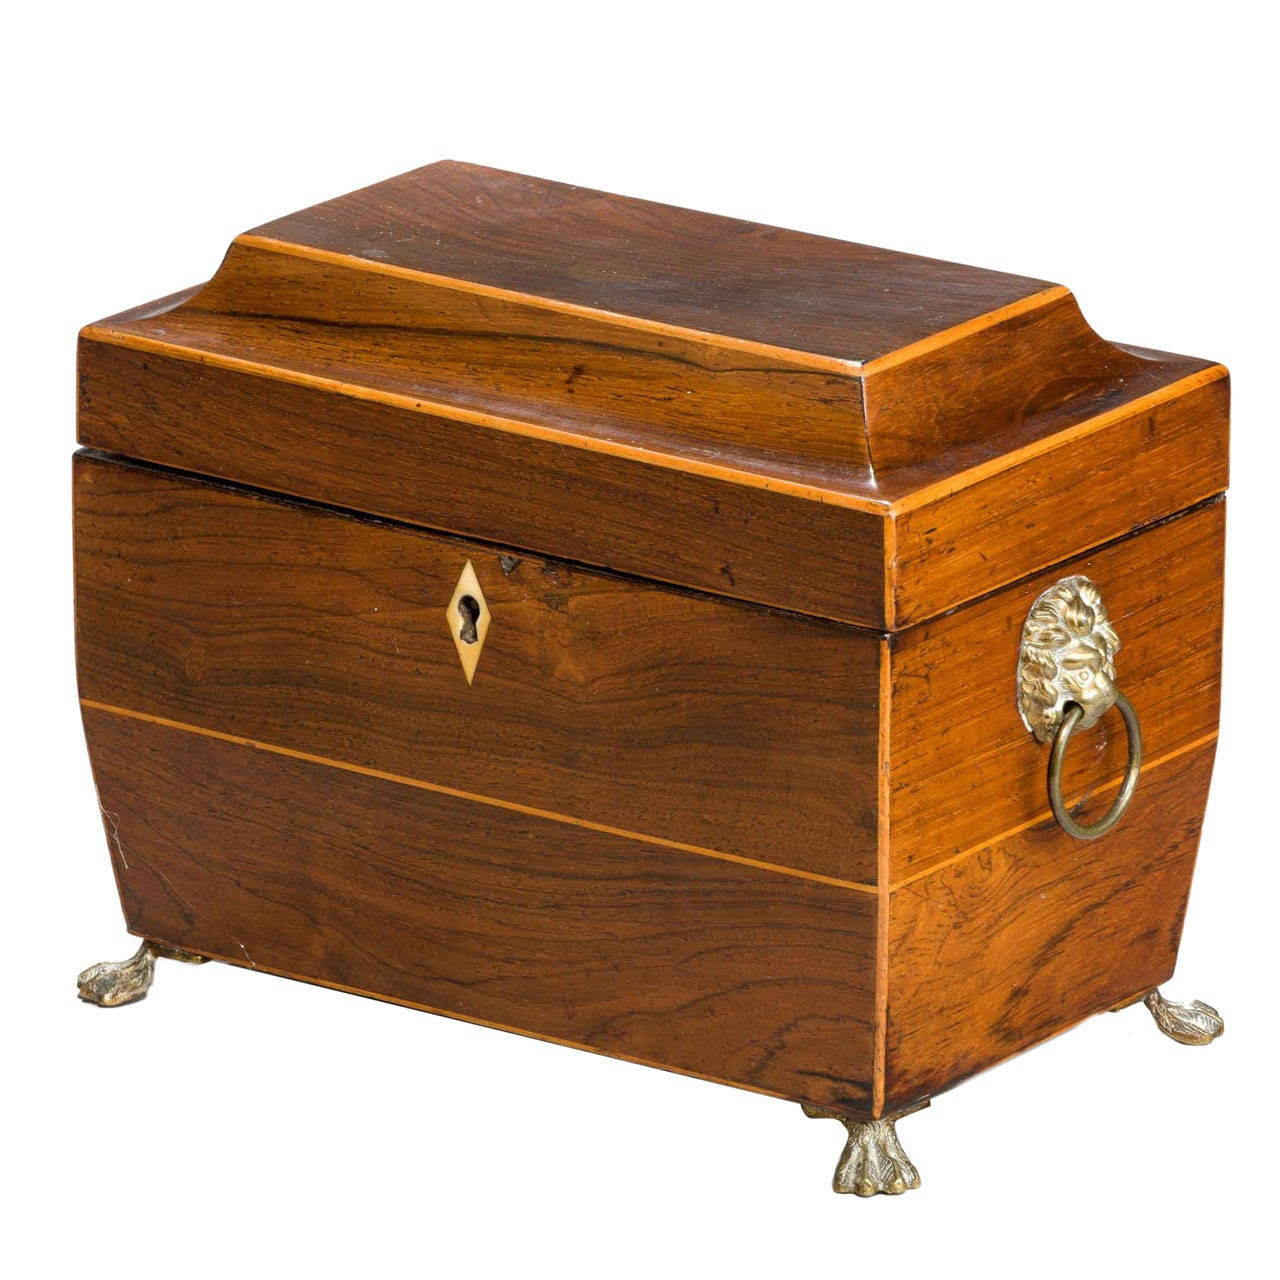 Regency Period Tea Caddy